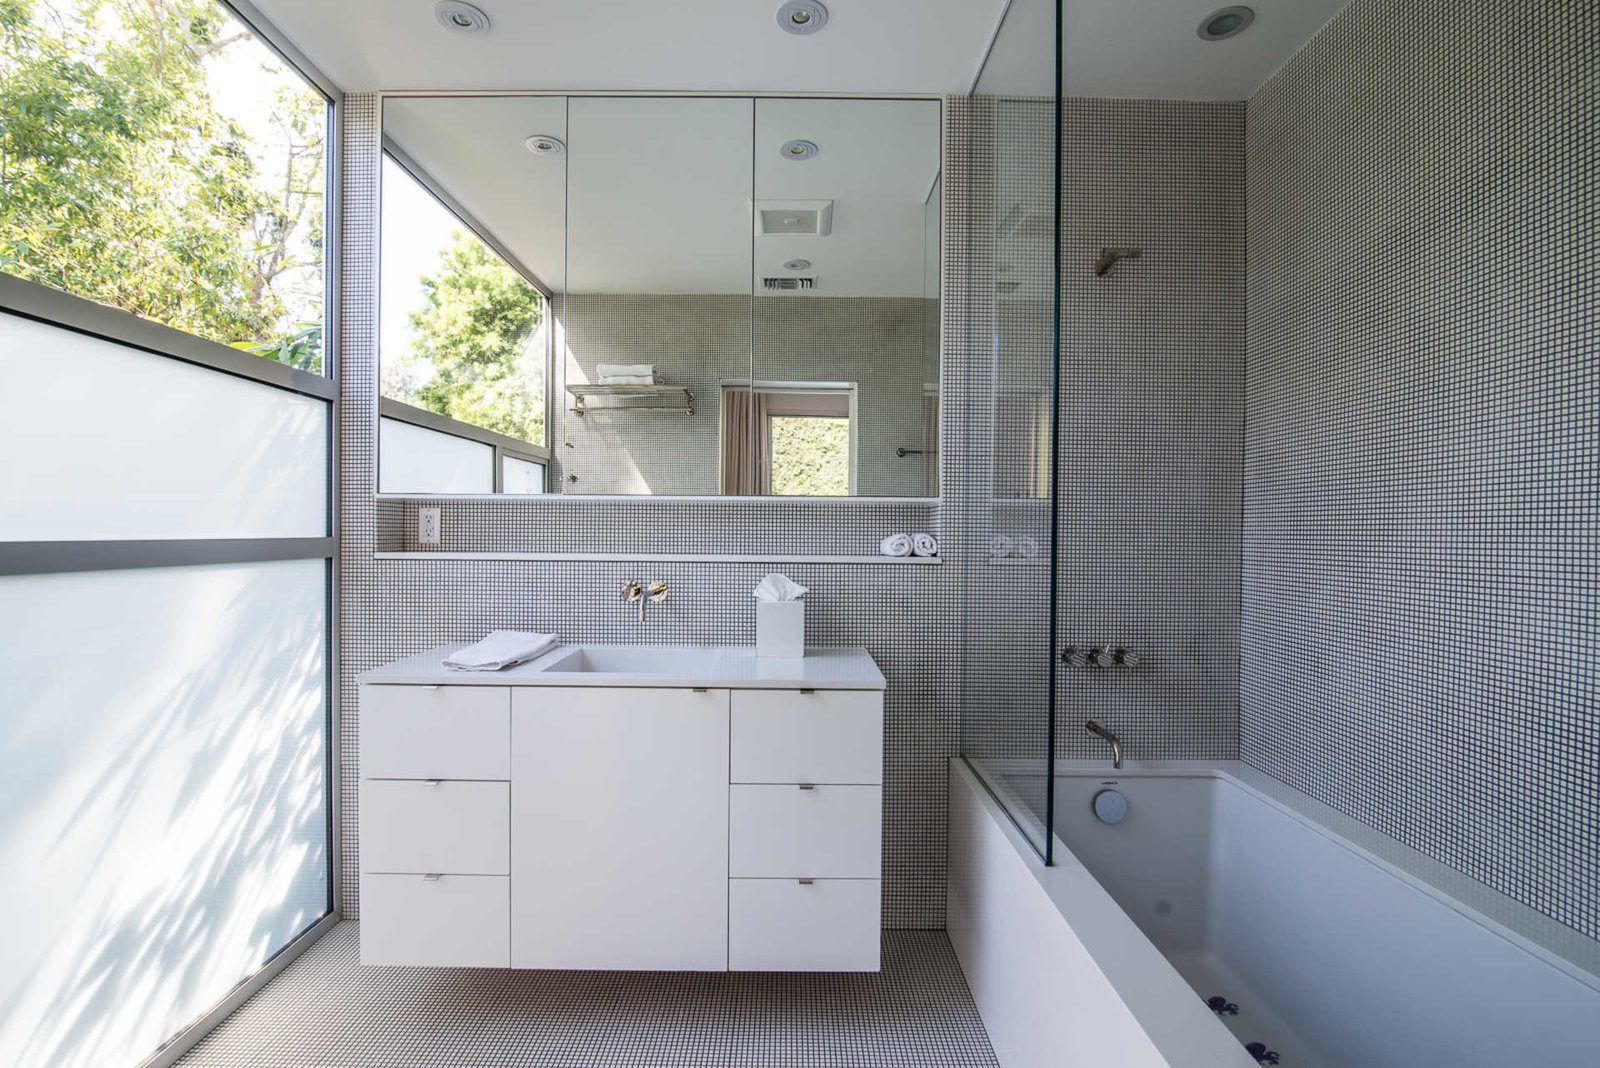 The home was thoughtfully designed to take full advantage of the property's idyllic surroundings. A serene guest bathroom features a frosted wall of glass and clerestory window, inspiring a gracious play on light and shadow.  Nichols Canyon